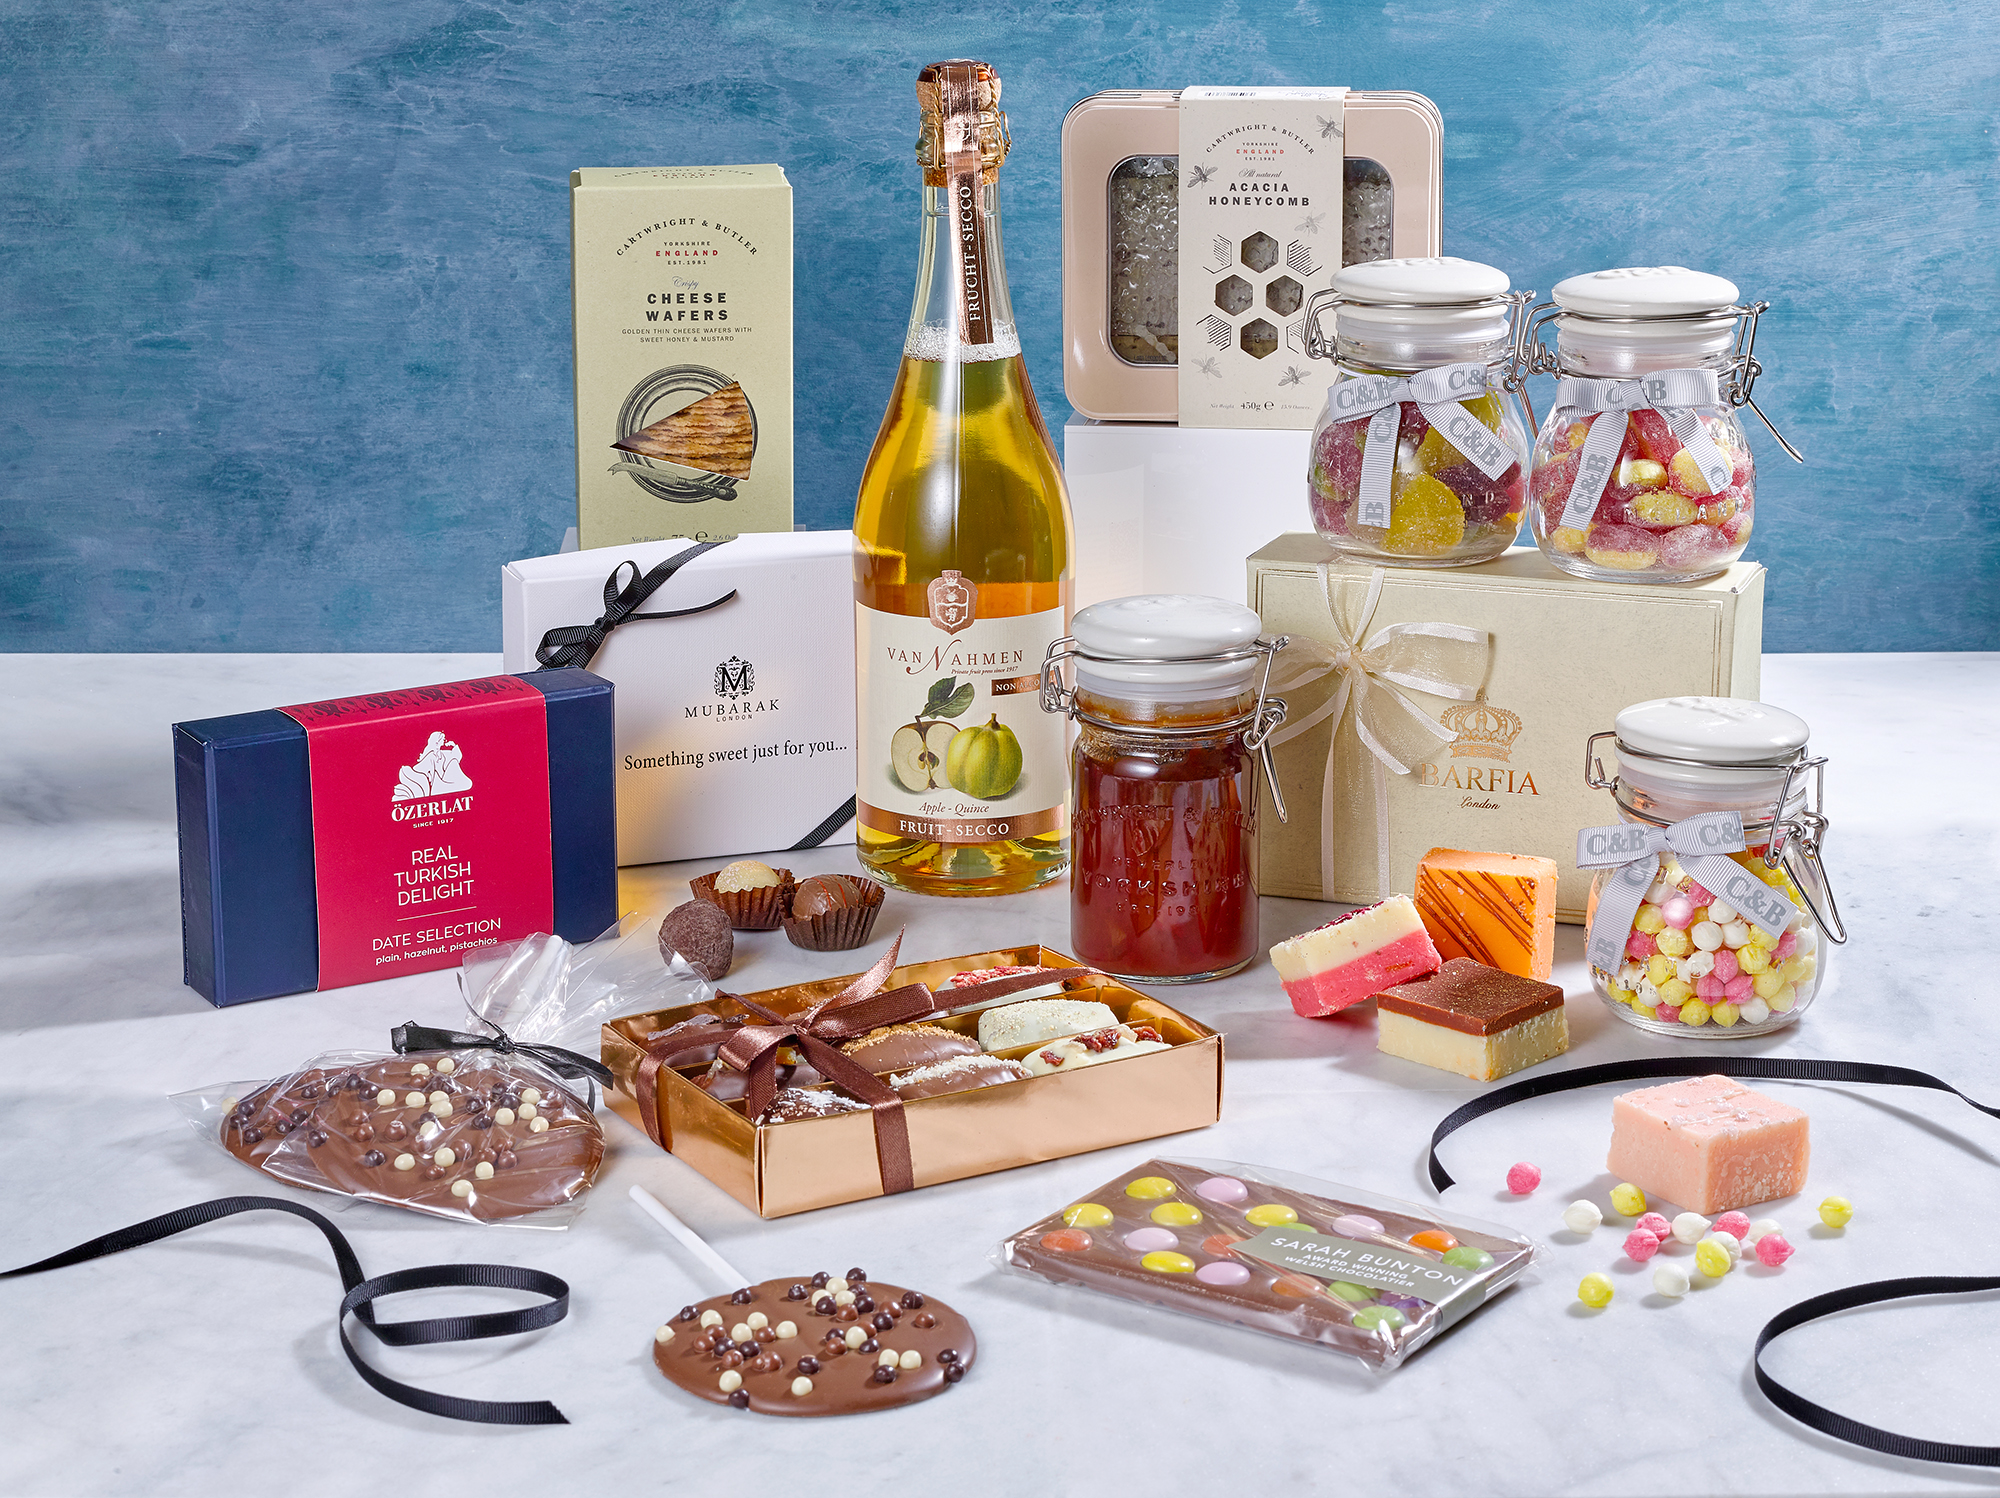 Food photography hampers, a collection of sweets chocolates fudges and other food and drink. This still life image was used for product packshots shot in London by Chris Howlett